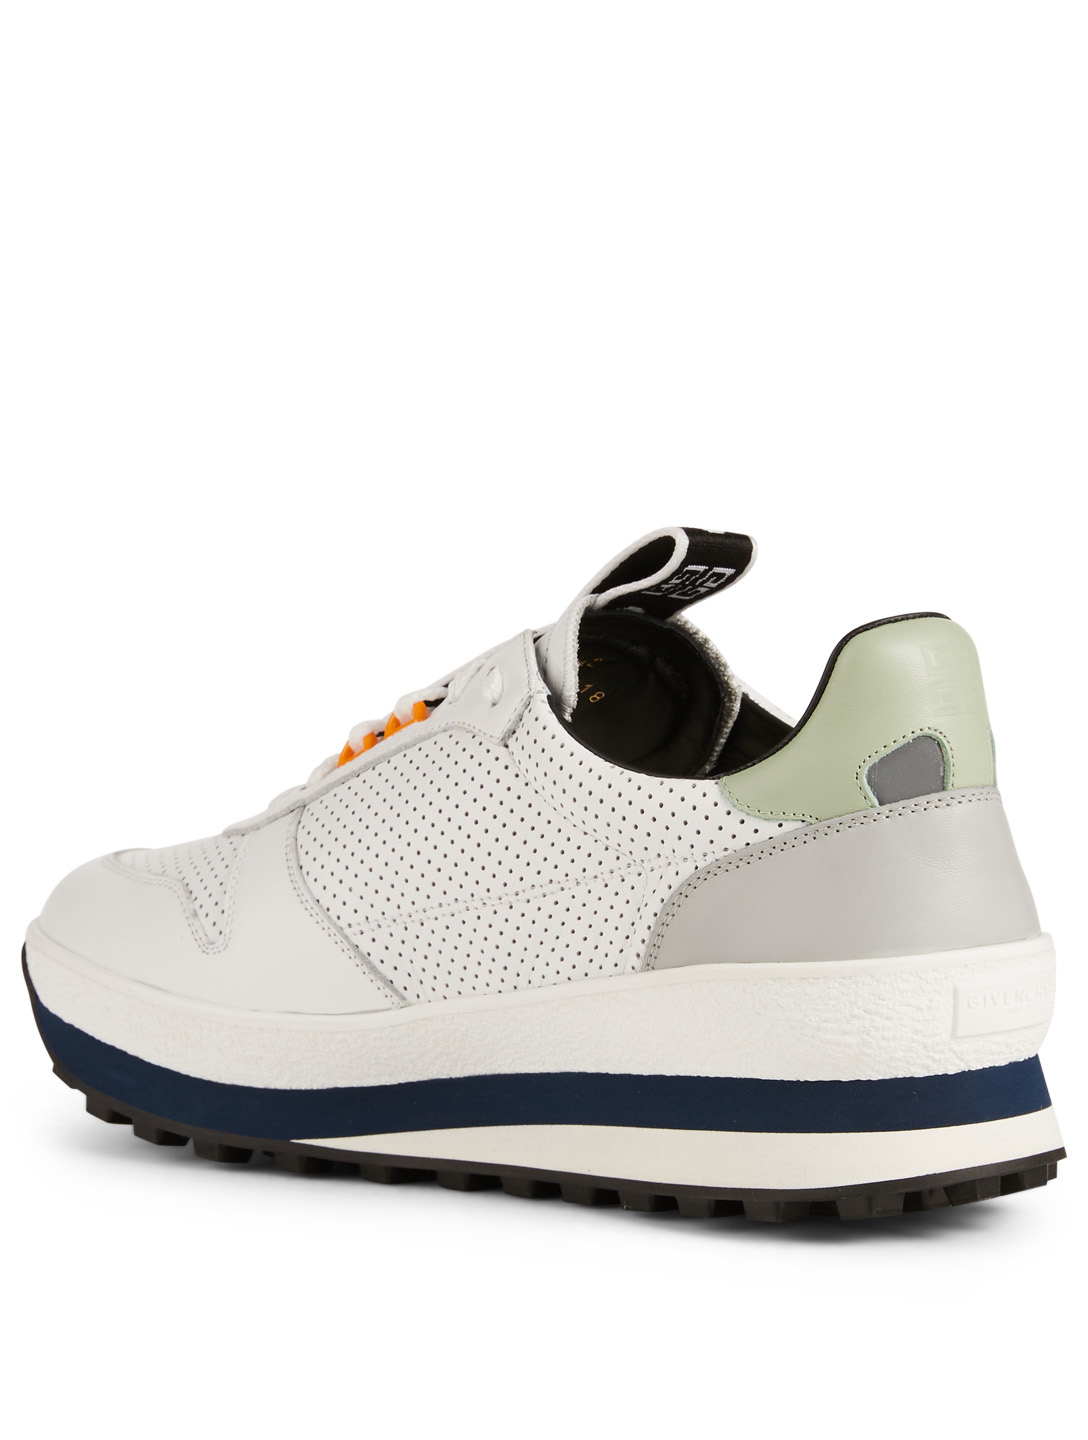 GIVENCHY TR3 Perforated Leather Sneakers Men's White